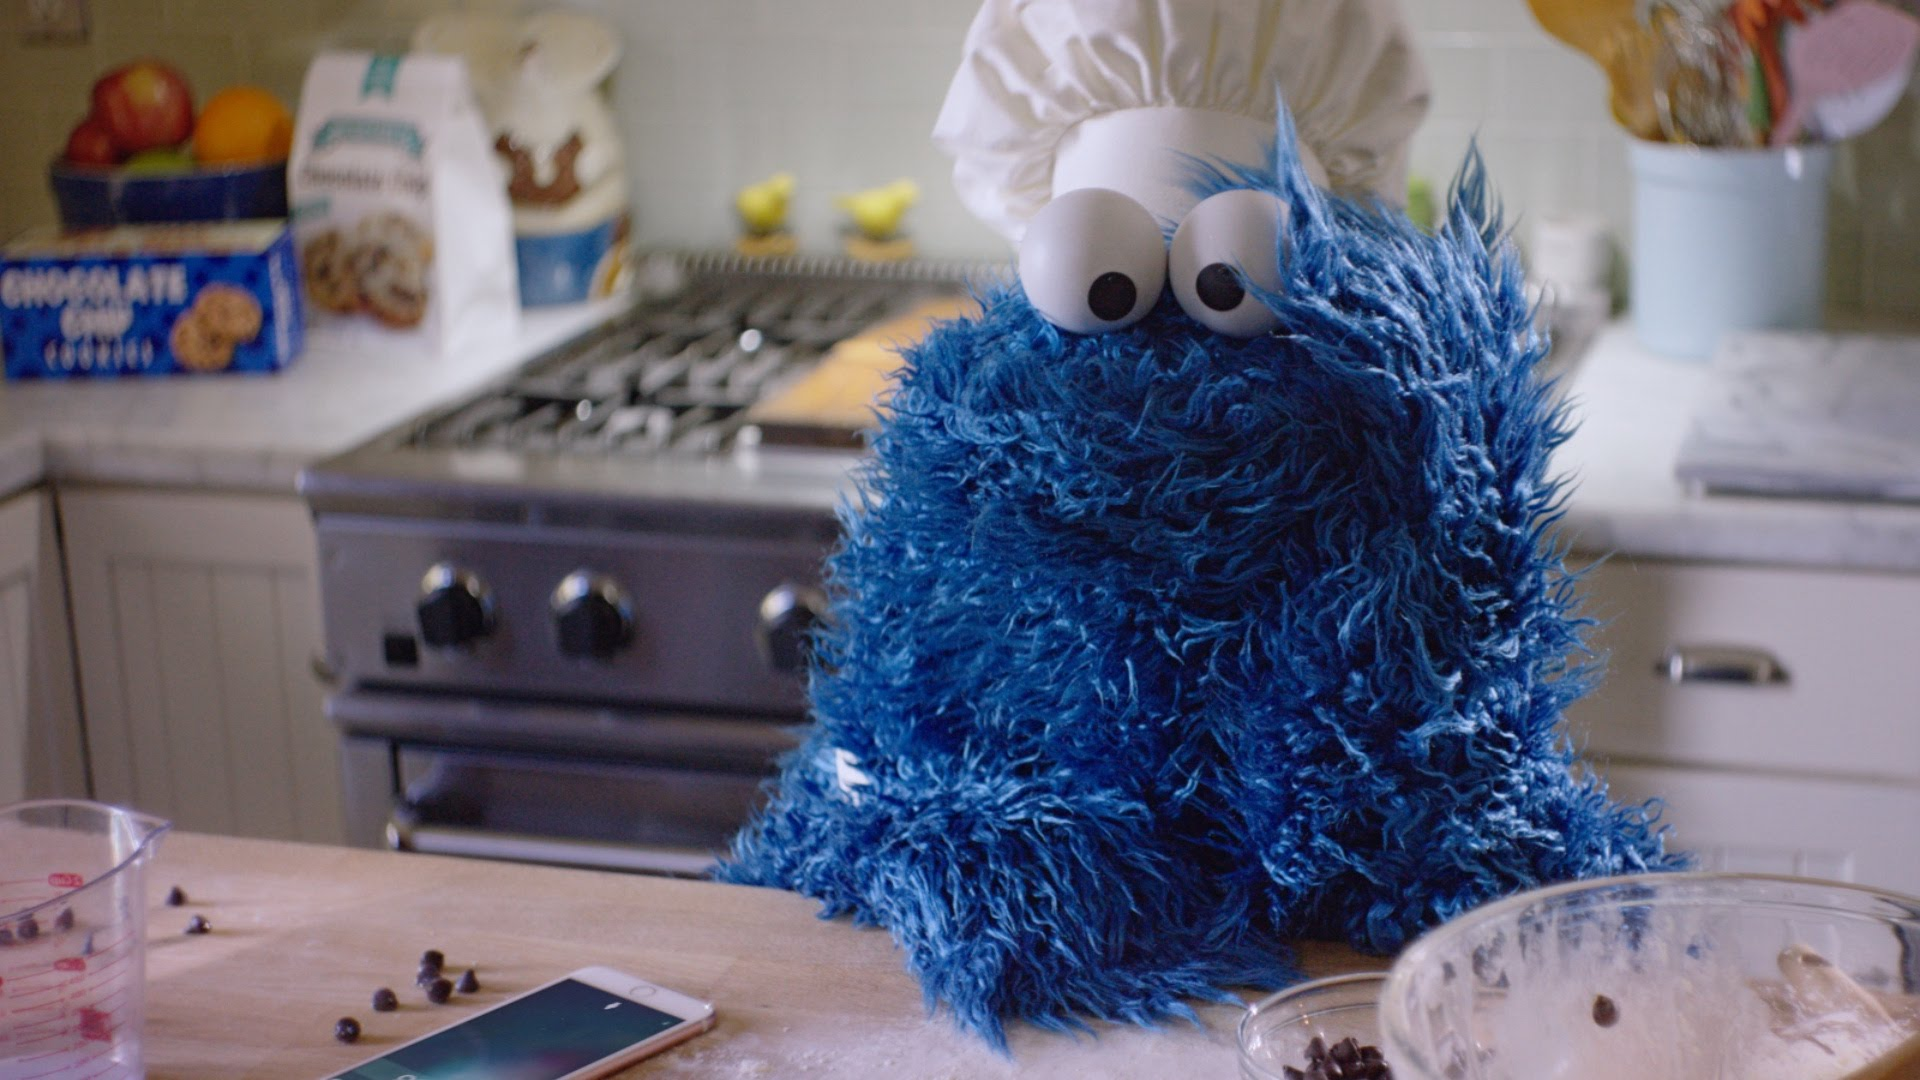 Musique pub Iphone 6s Timer – Cookie Monster